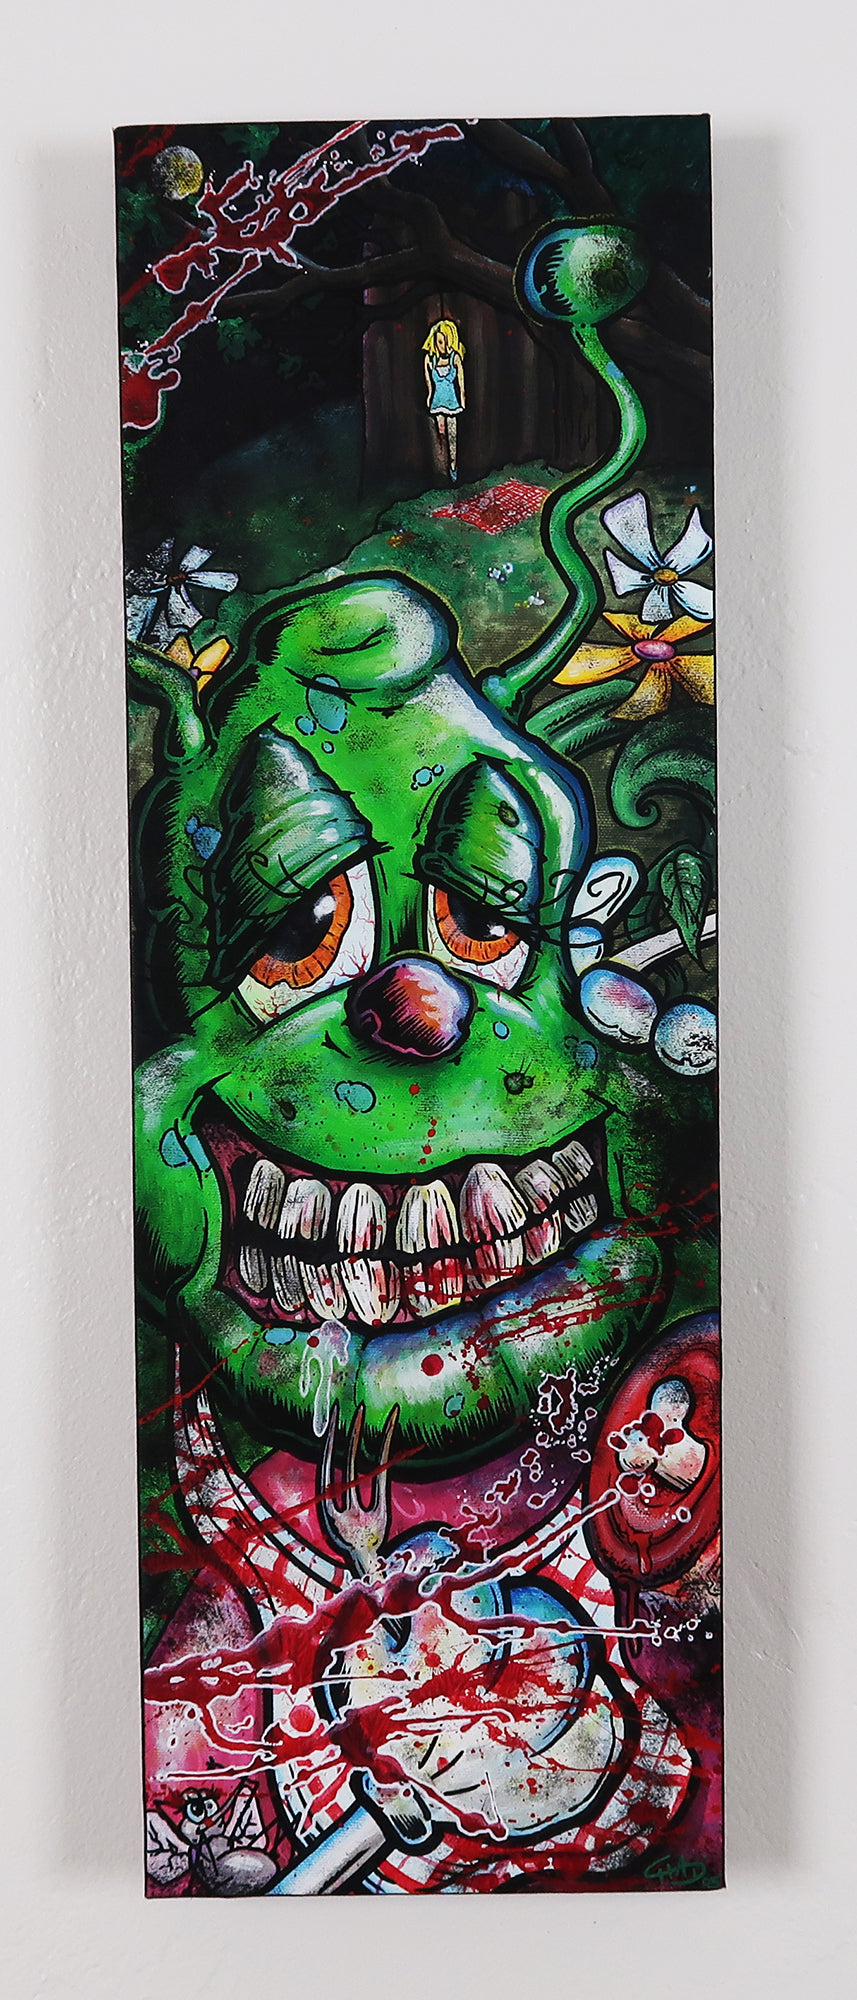 "Eileen in Wonderland 8""x24"" Canvas Painting"